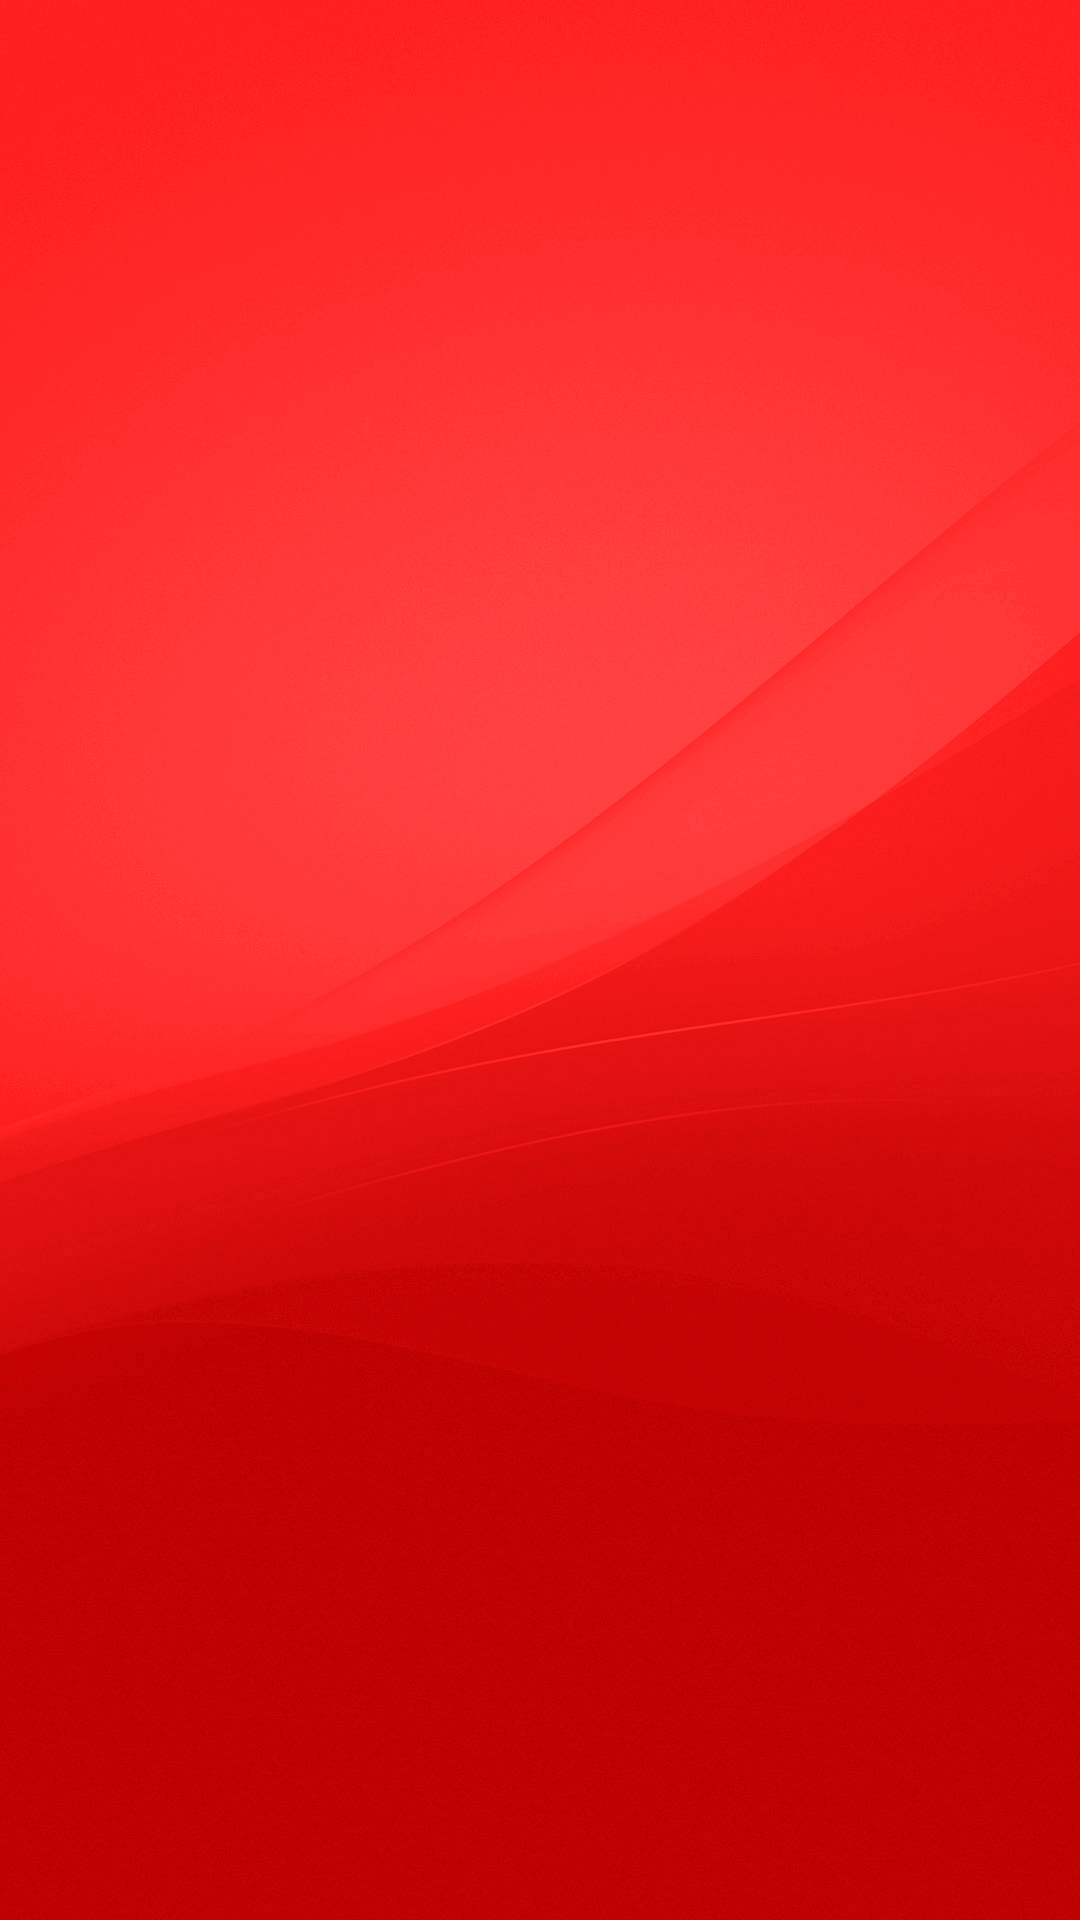 xperia lollipop red wallpaper